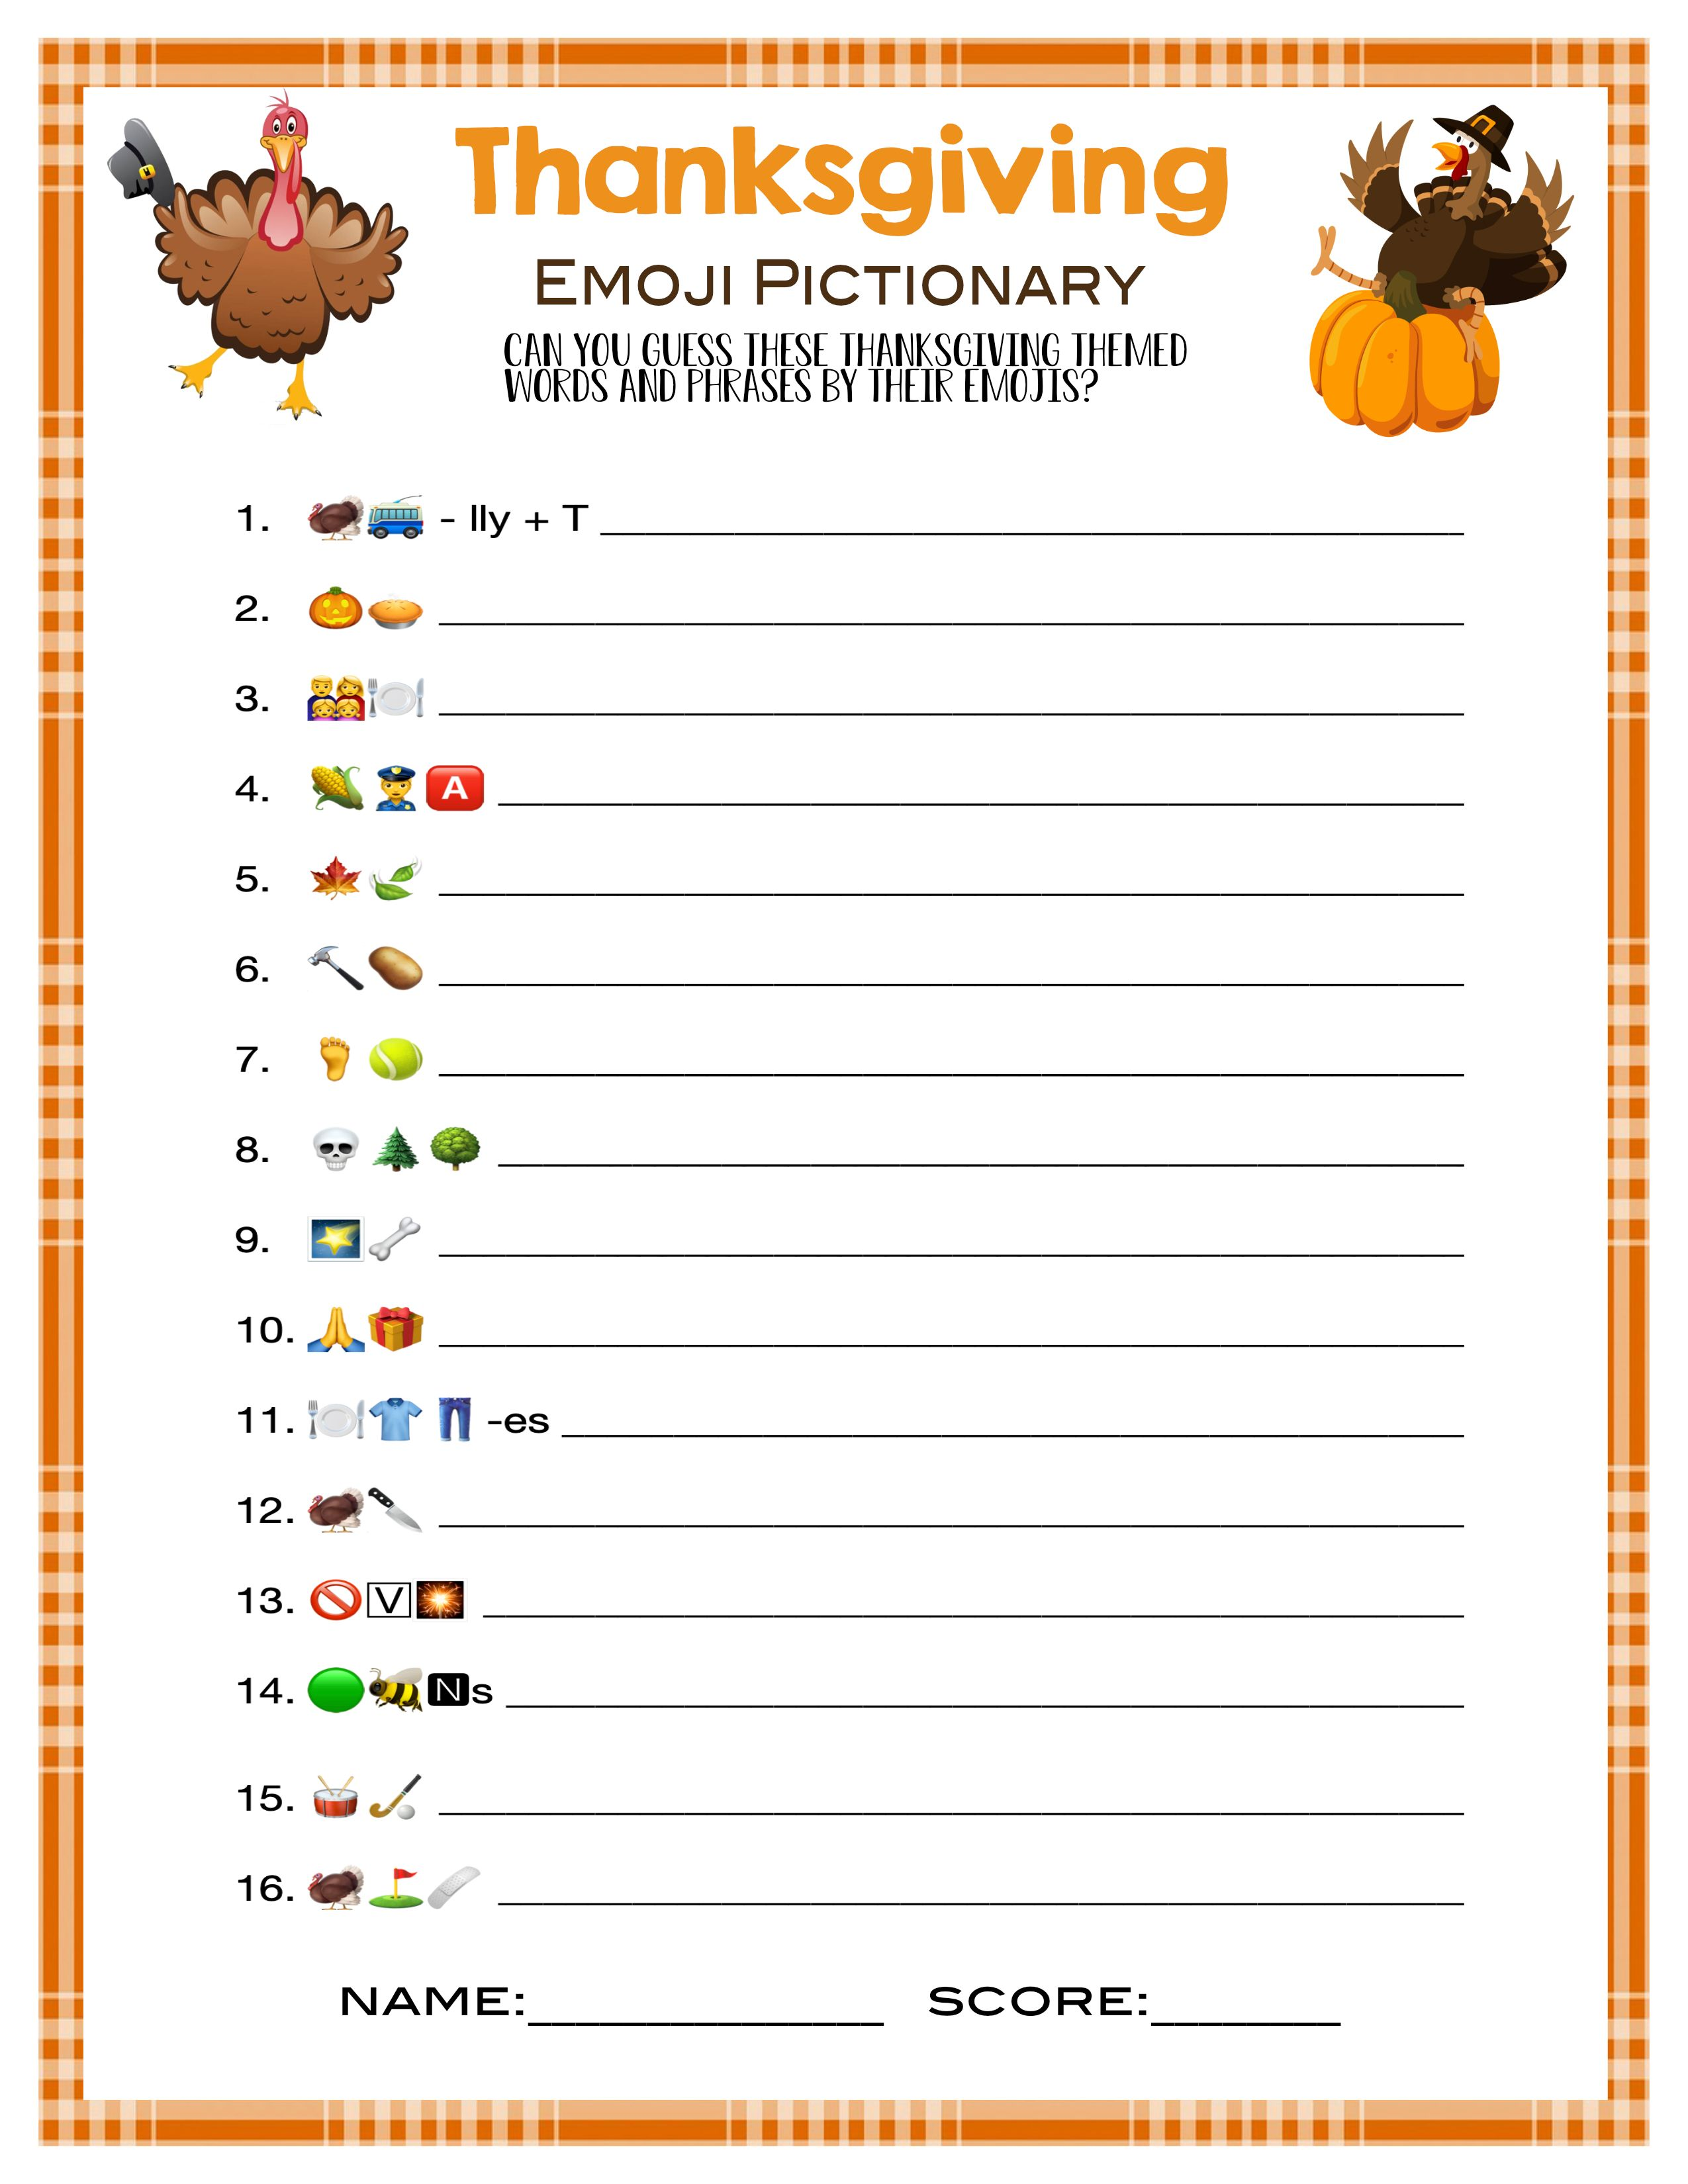 13 Thanksgiving Games Friendsgiving Games Trivia Family Games Activities Printable Or Virtual Party Games Instant Download In 2020 Friendsgiving Games Thanksgiving Lessons Thanksgiving Family Games